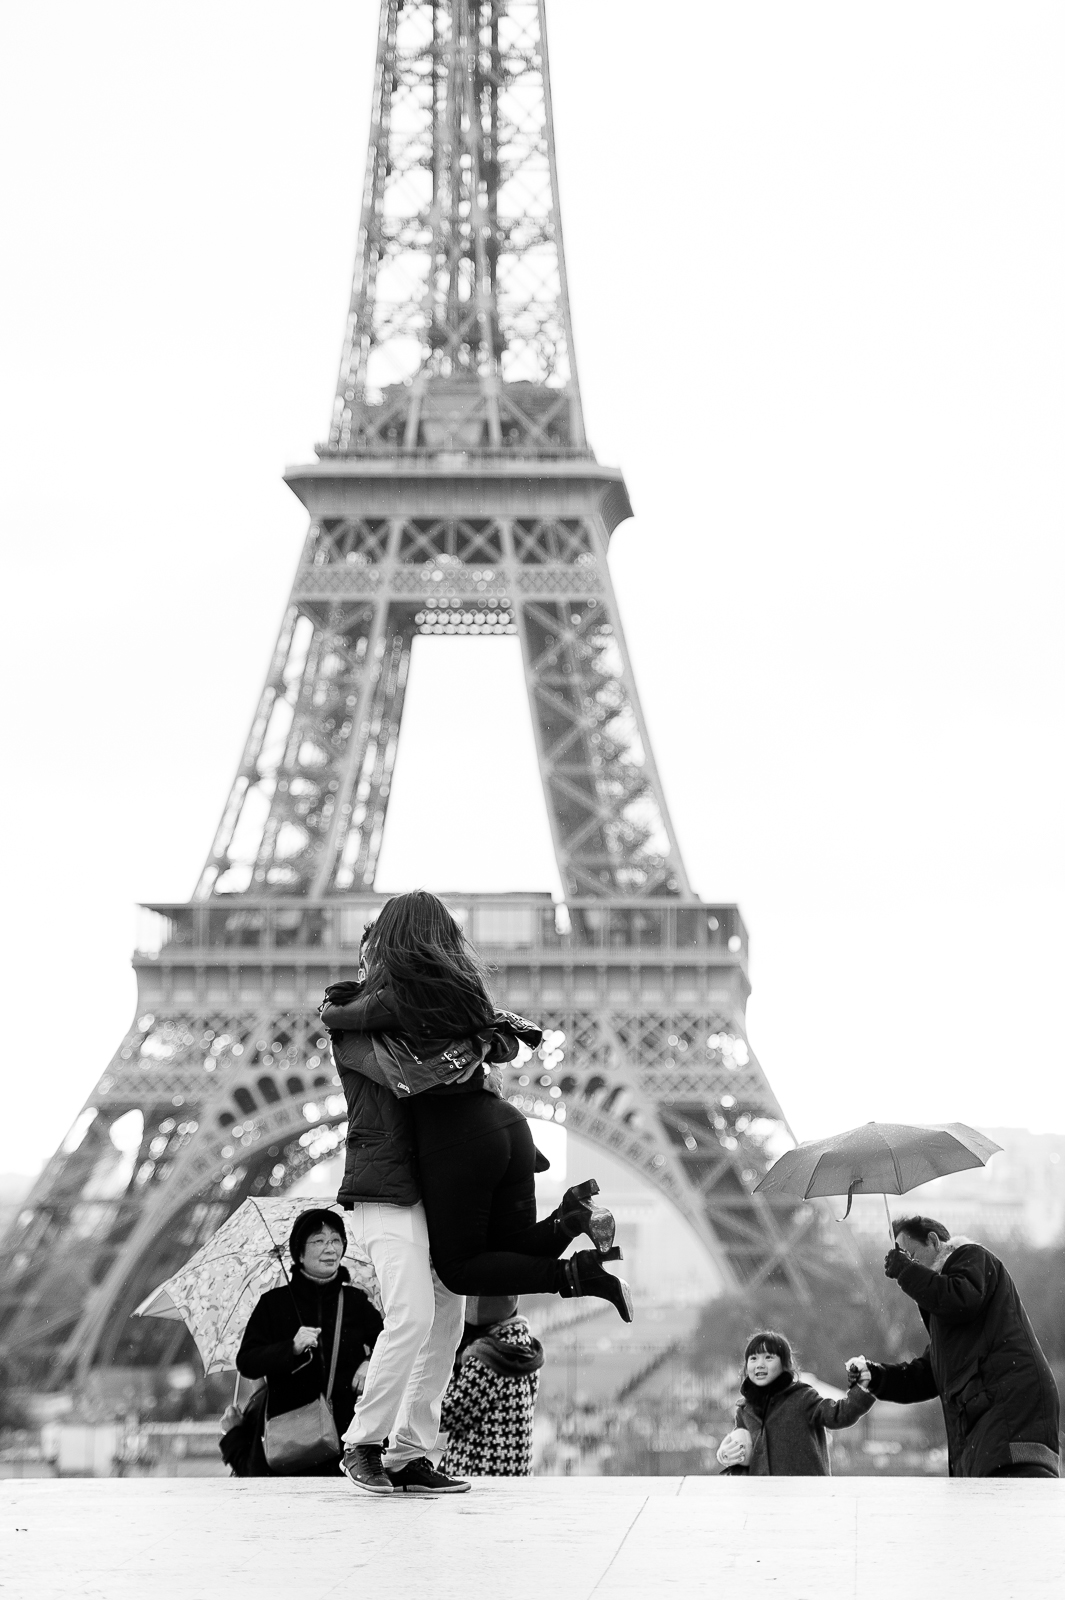 ensaio de fotos torre eiffel pre wedding paris